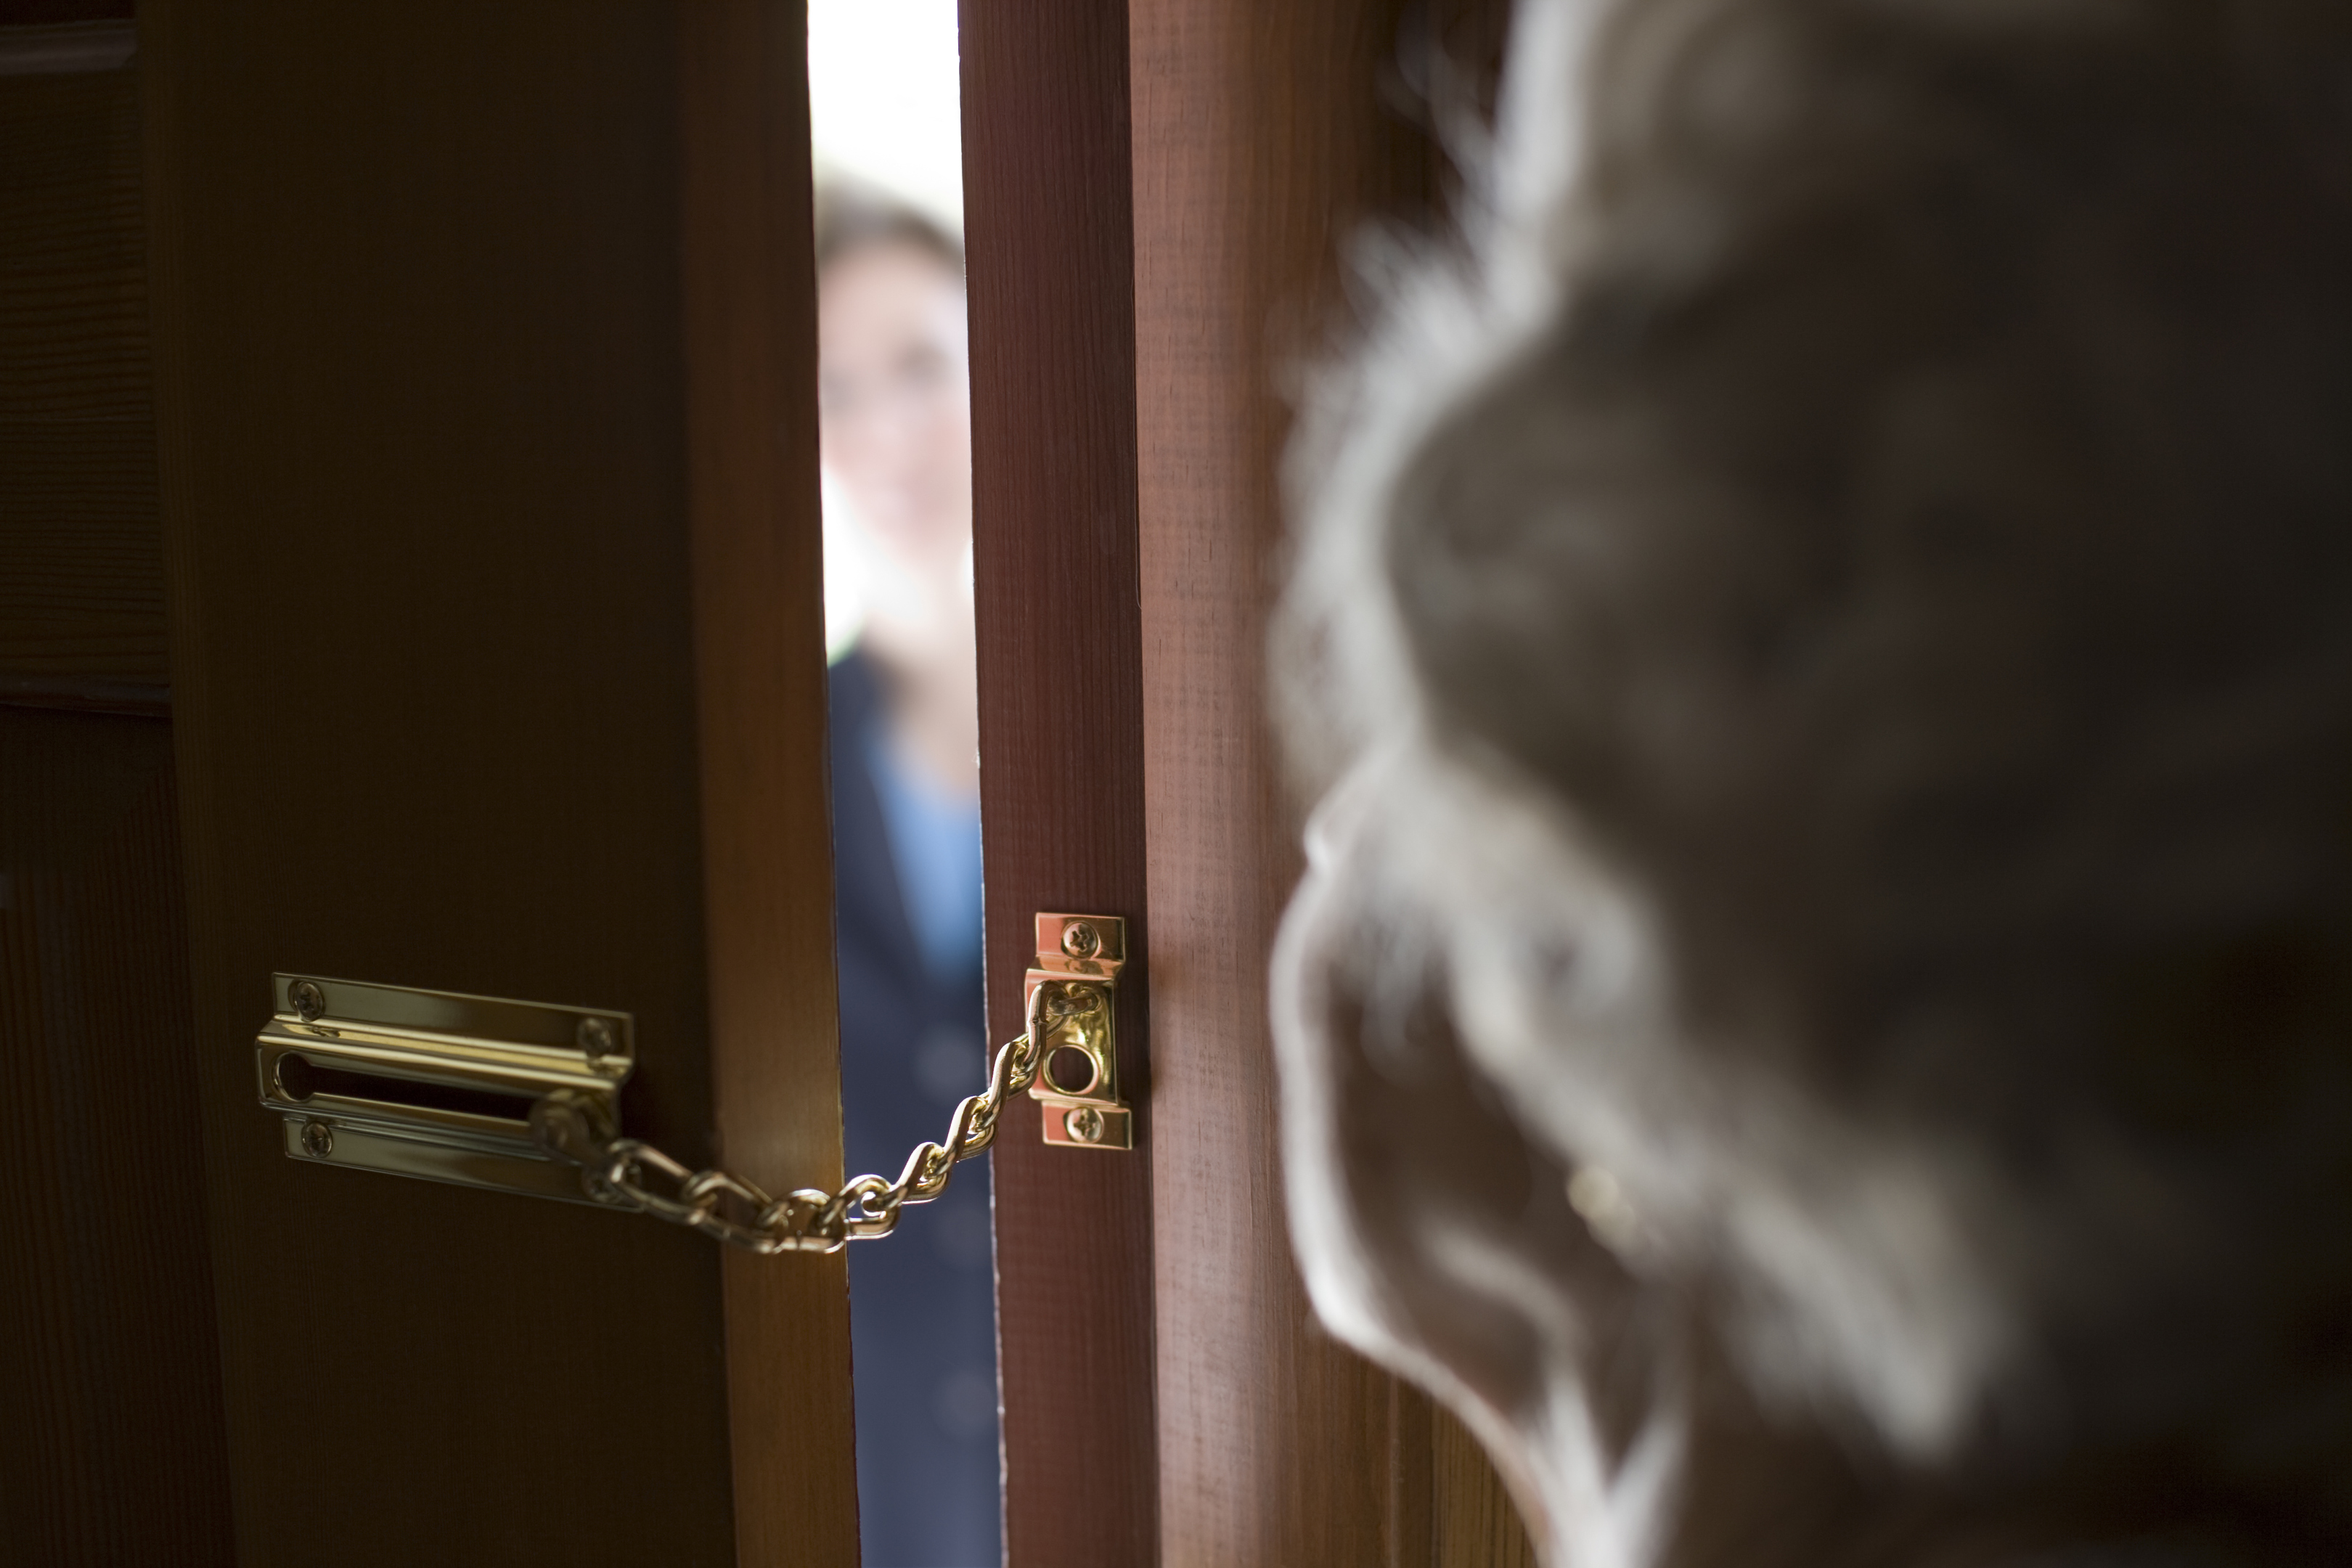 Strangers at the door? Think twice before letting them in